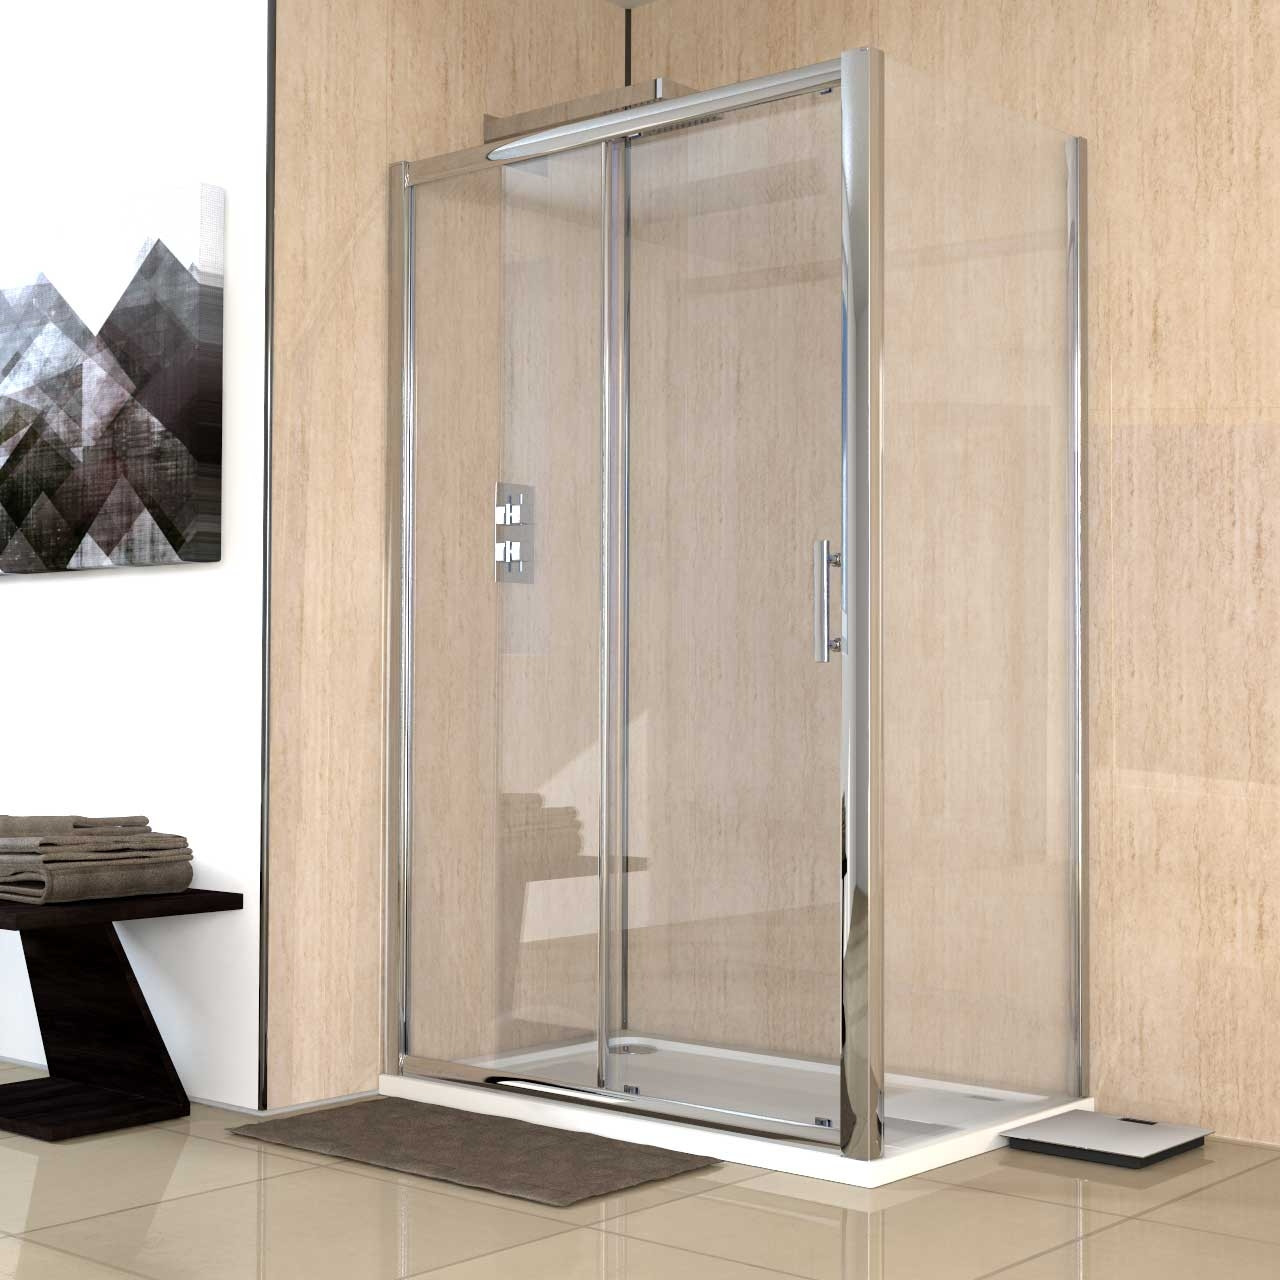 Series 8 1200 x 760 Sliding Door Enclosure